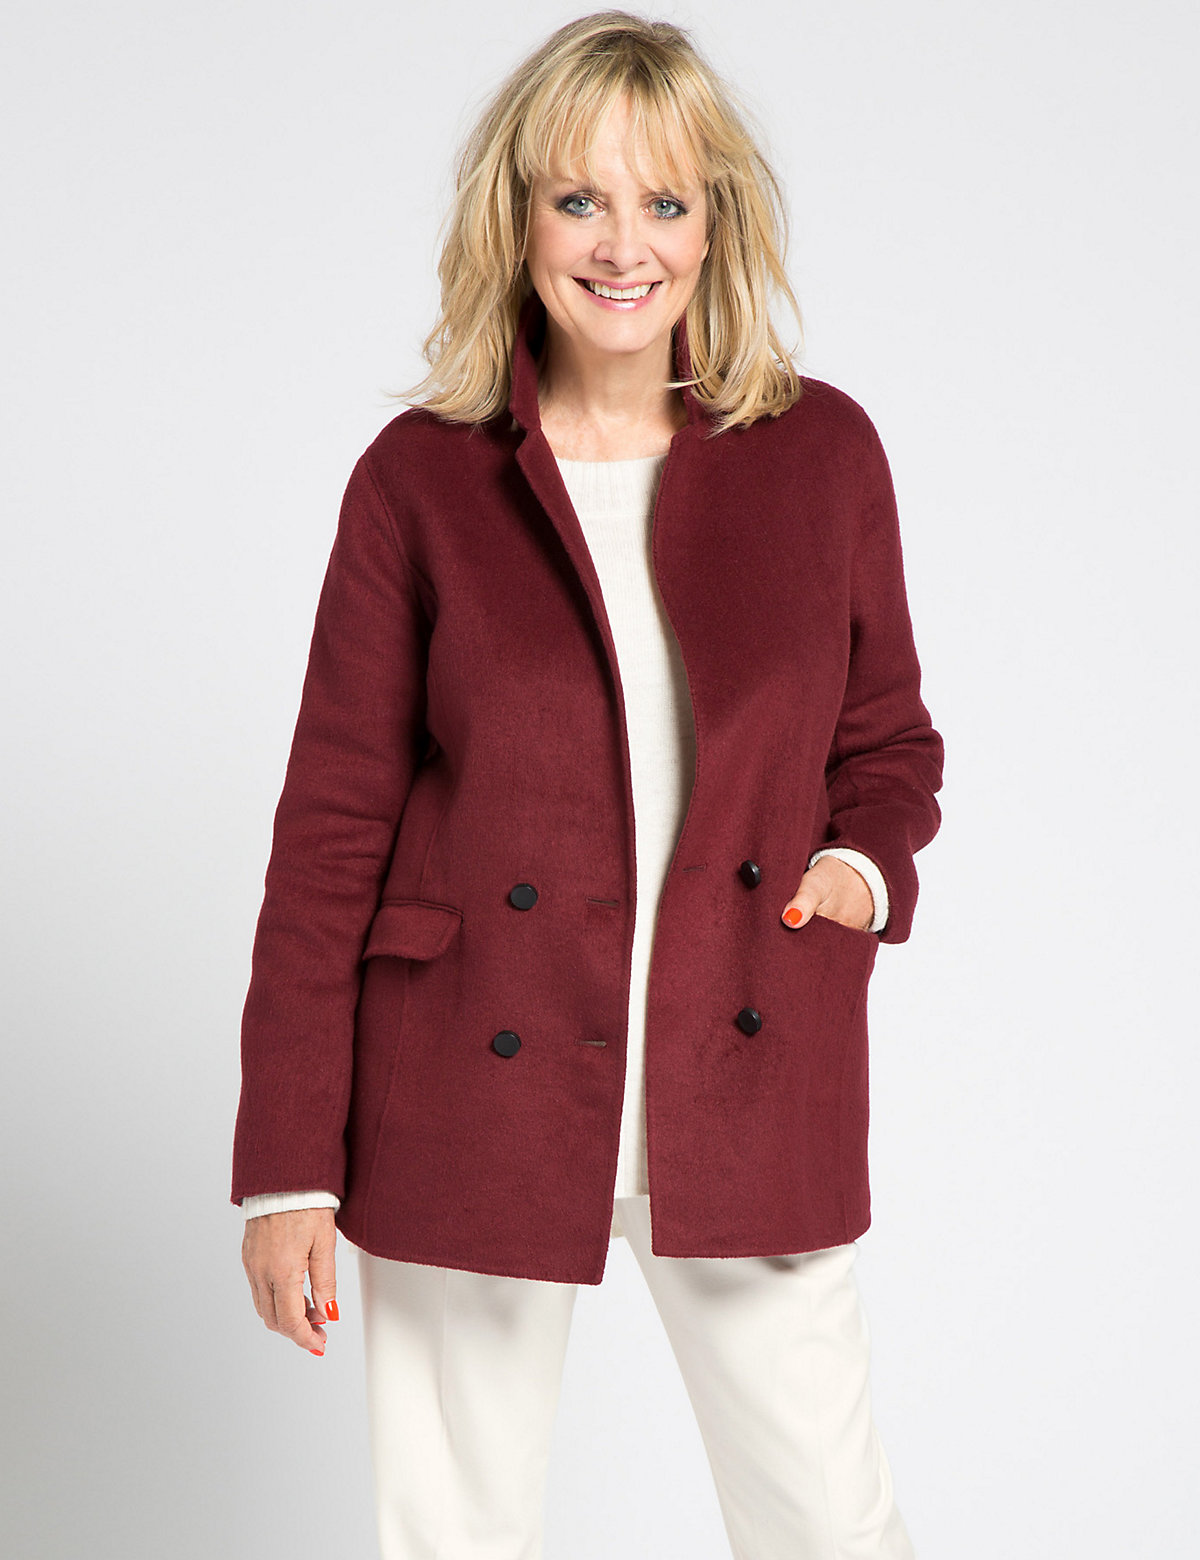 Designed by Twiggy Double Face Coat